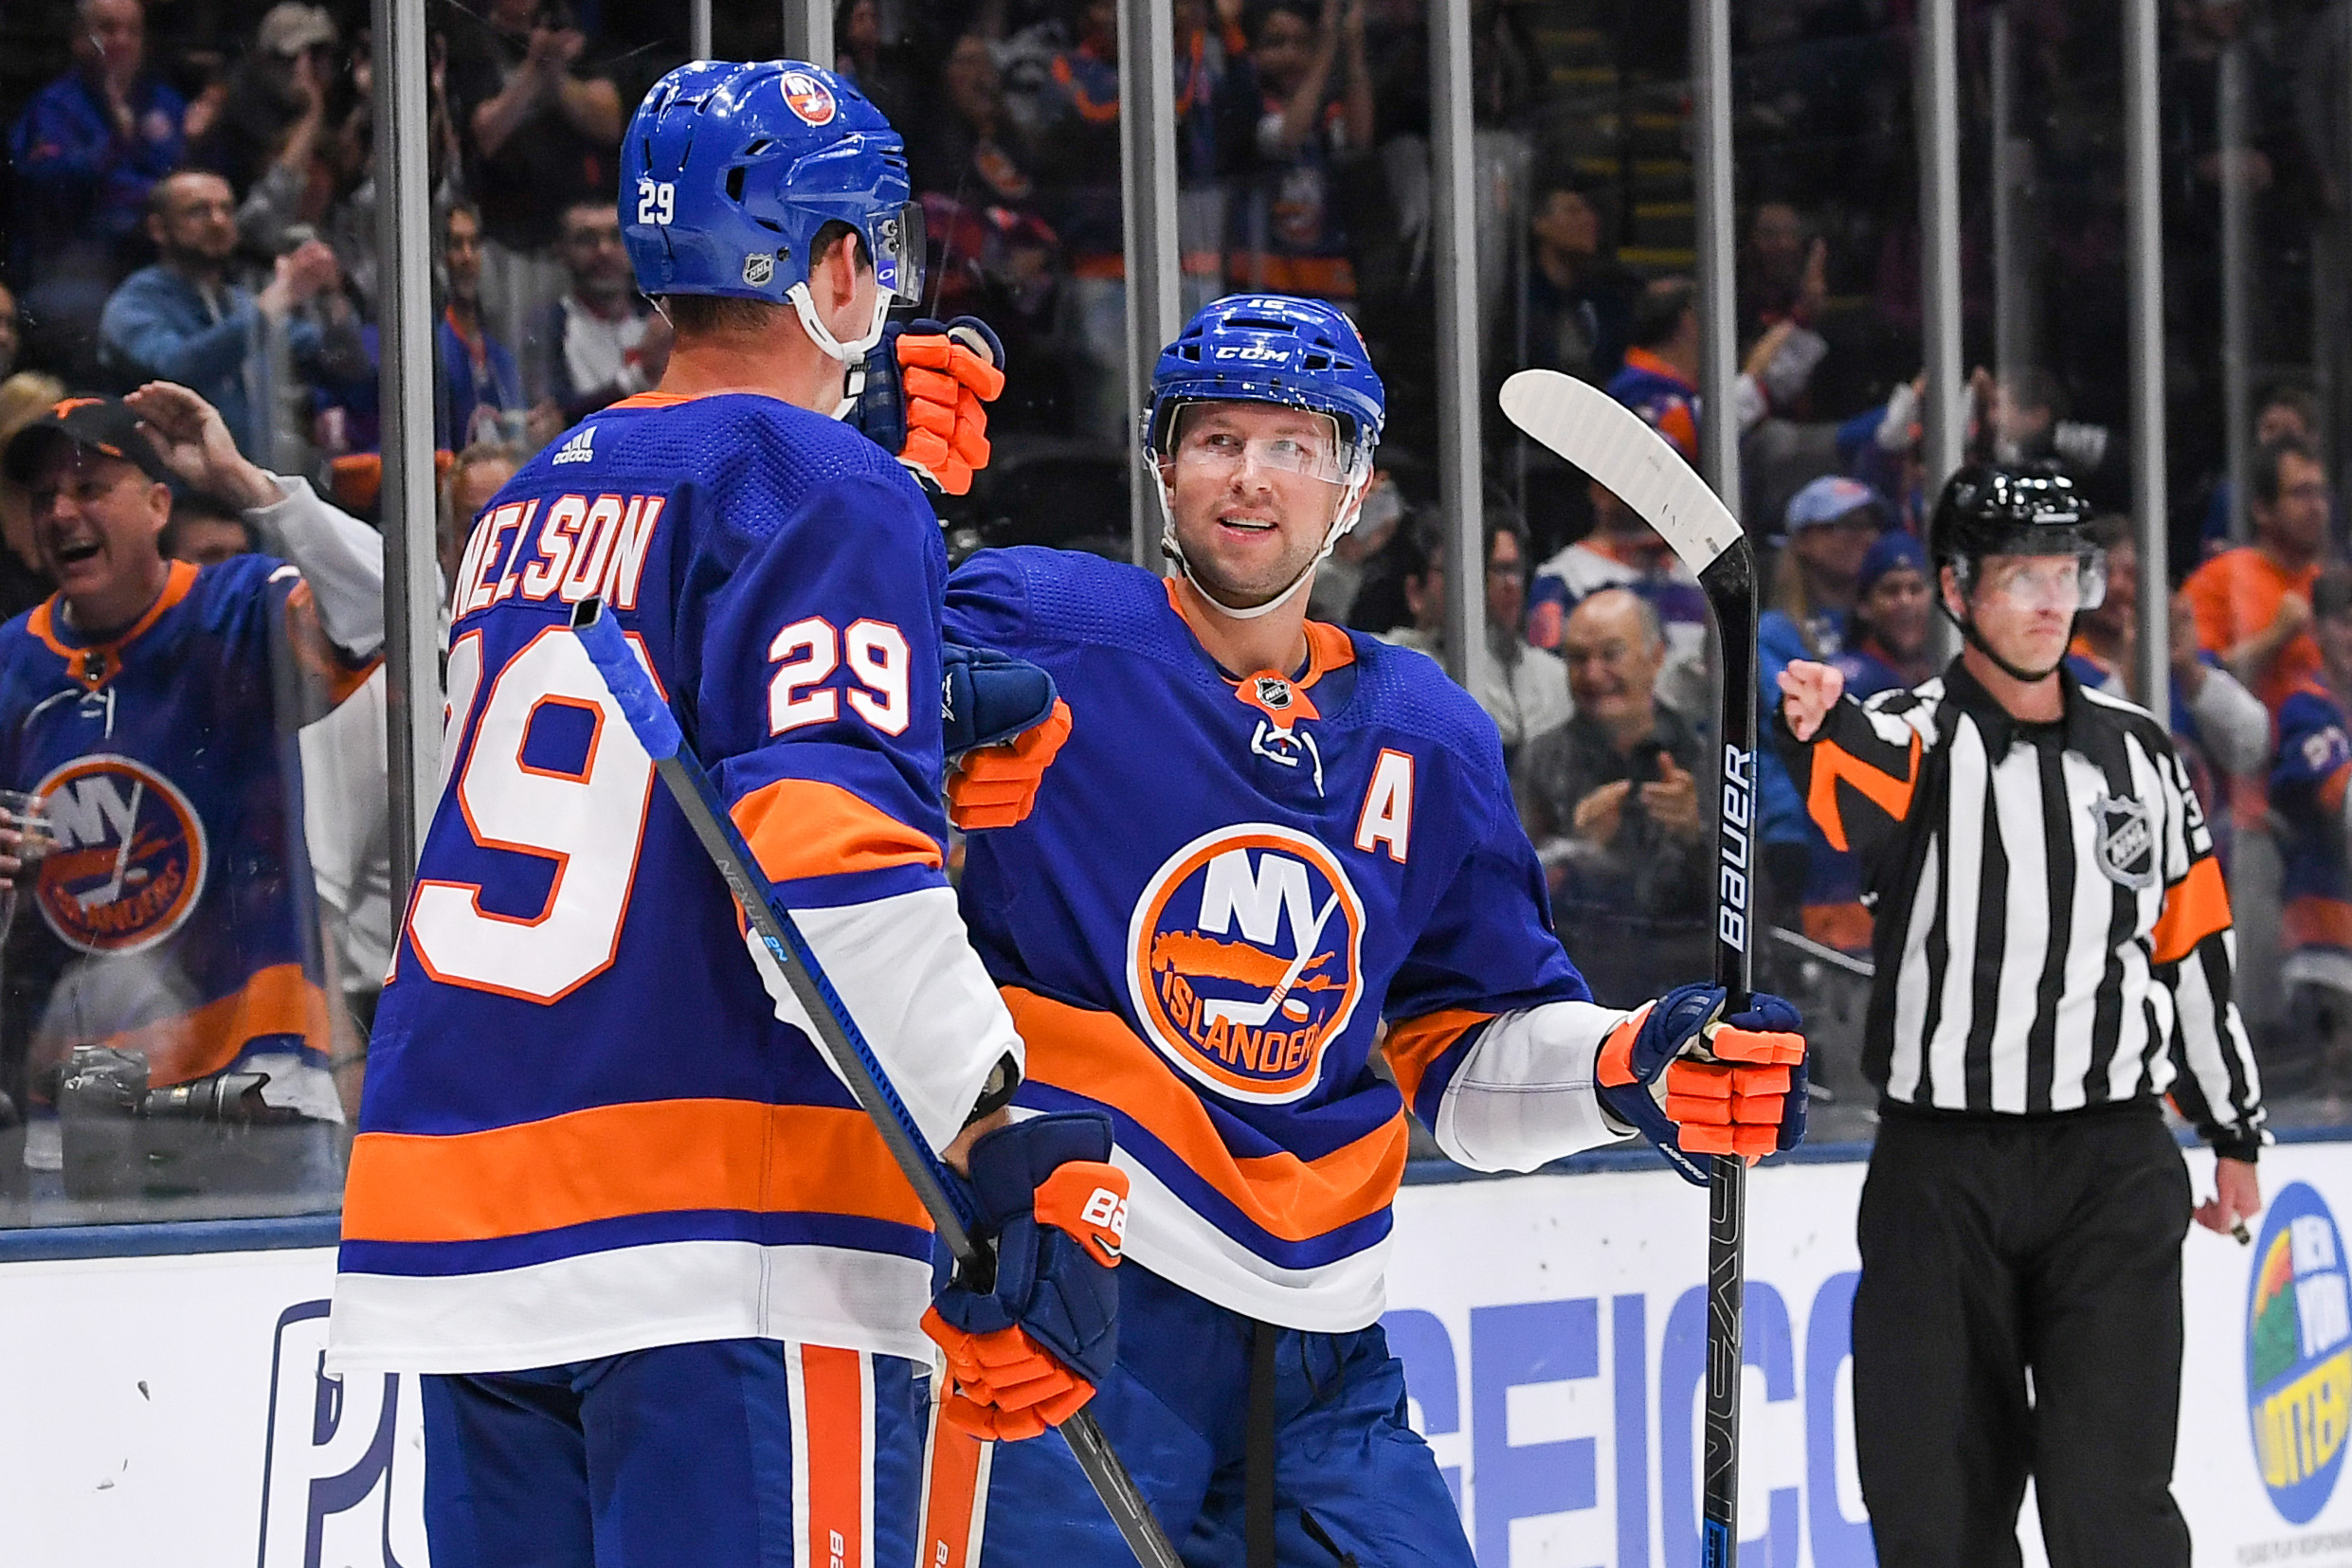 Oct 6, 2019; Brooklyn, NY, USA; New York Islanders celebrate the goal by New York Islanders center Brock Nelson (29) against the Winnipeg Jets during the second period at Nassau Veterans Memorial Coliseum. Mandatory Credit: Dennis Schneidler-USA TODAY Sports